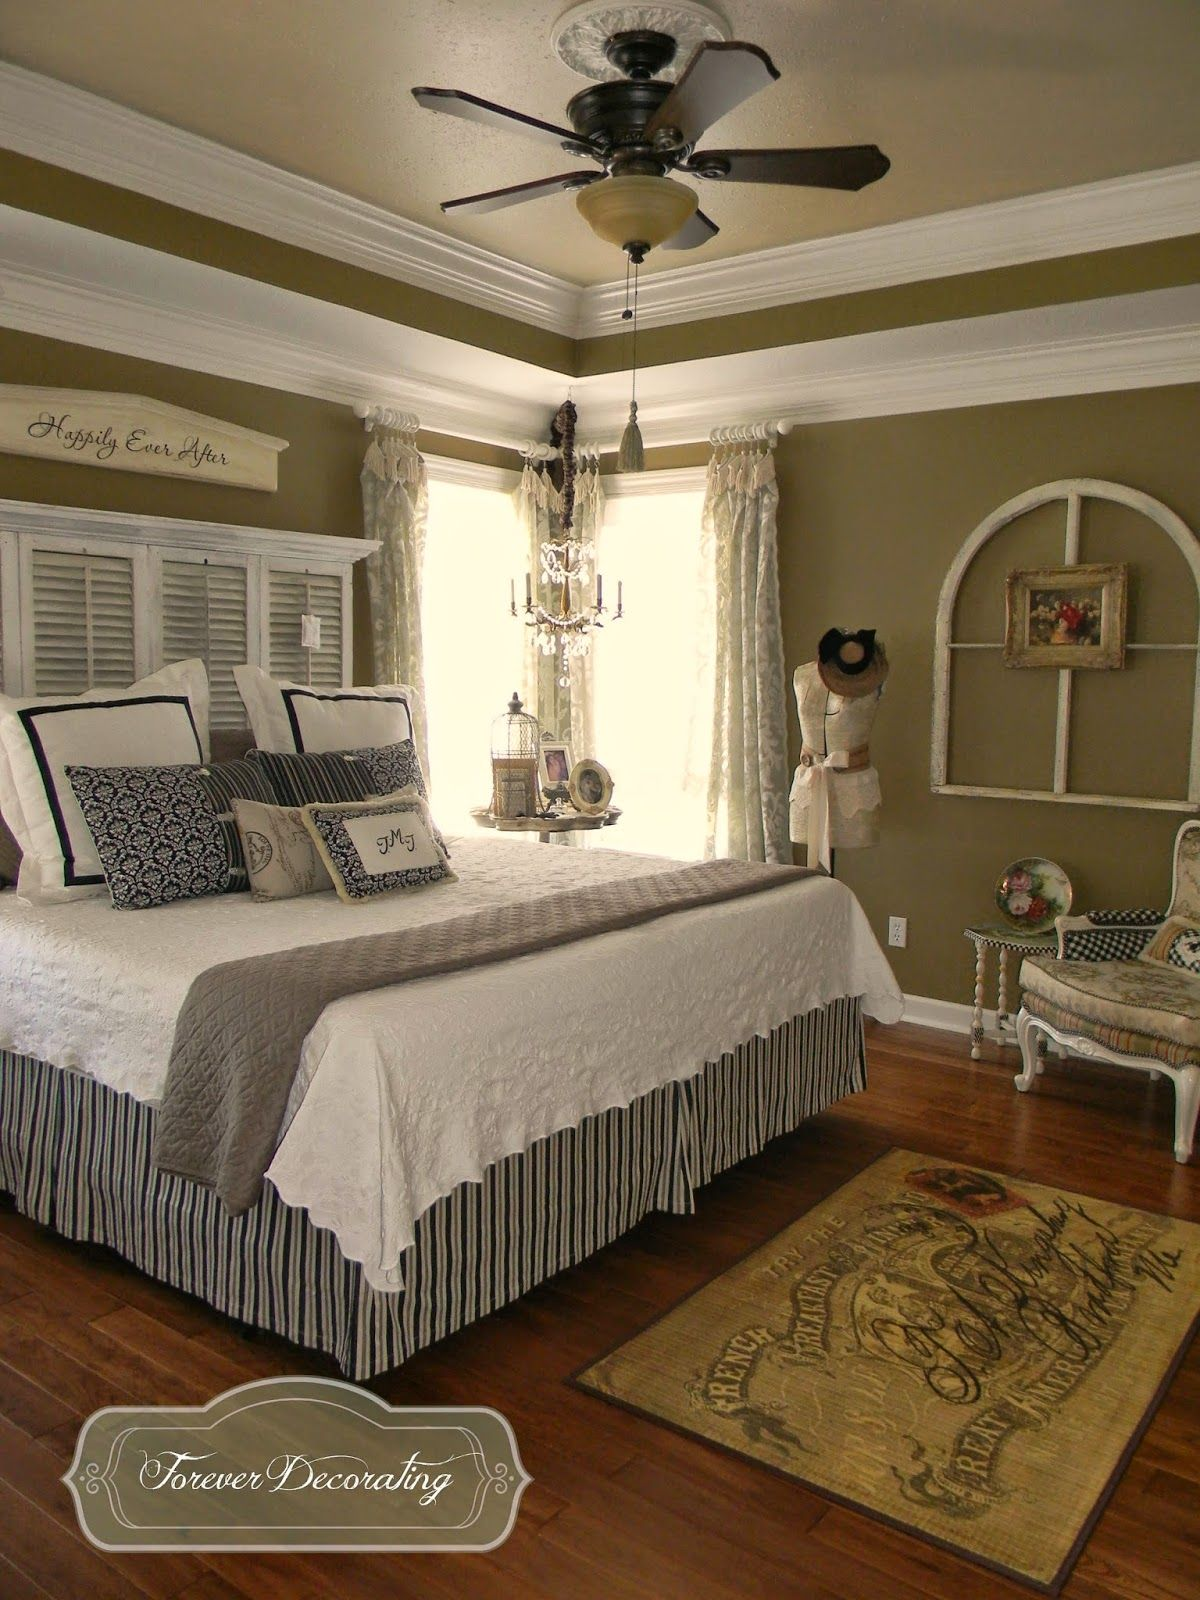 Crown Molding Cost Forever Decorating No Cost Decorating Switcheroo Love The